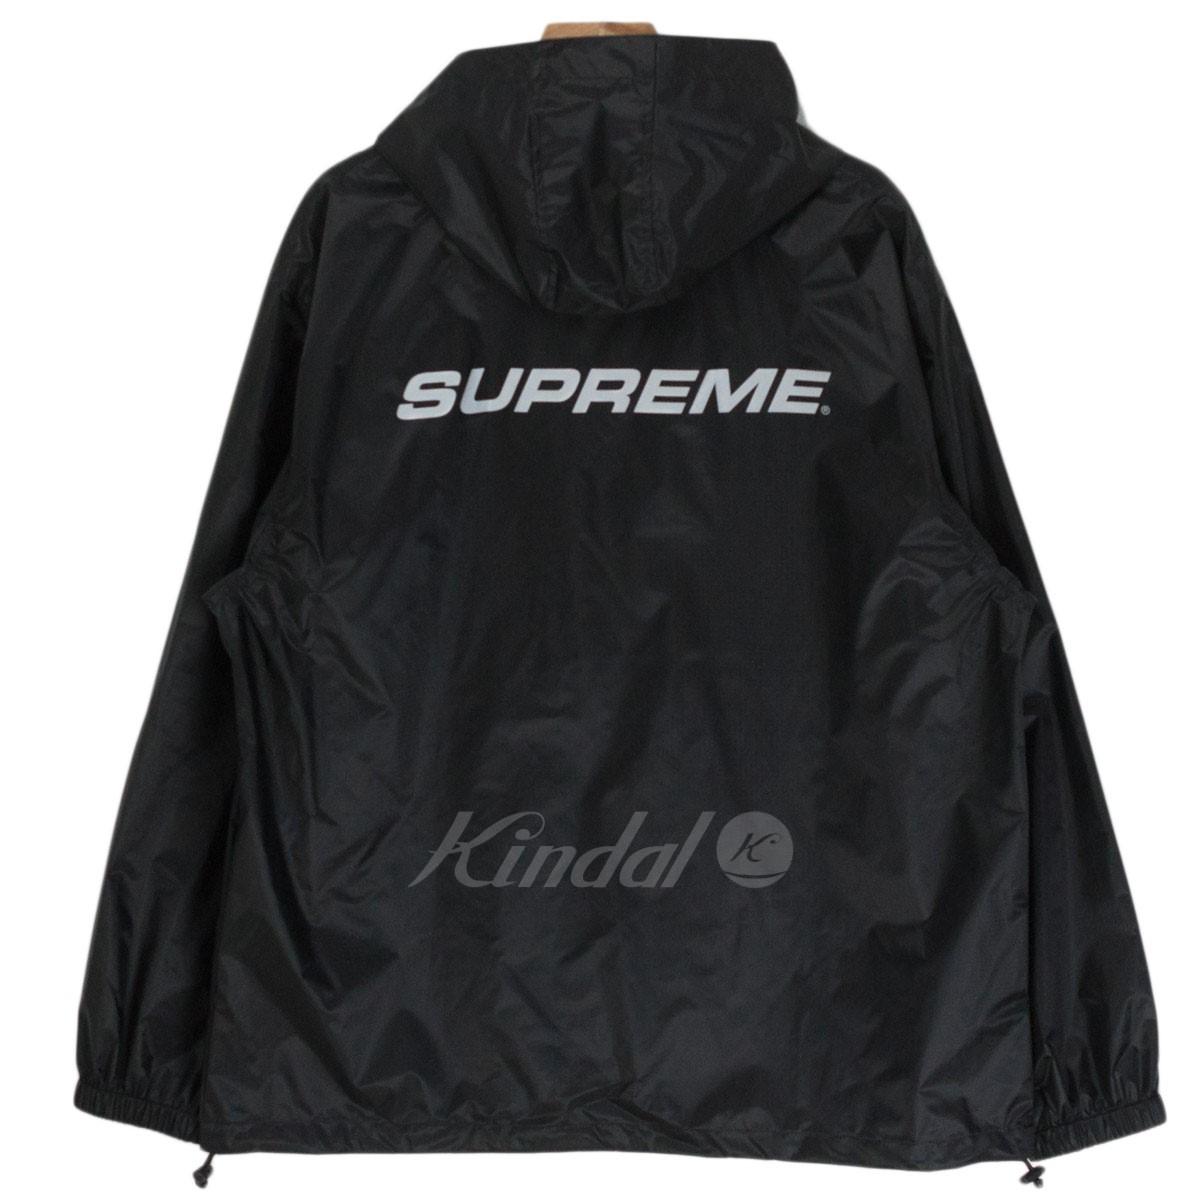 【中古】SUPREME 2017AW Packable Ripstop Pullover 【送料無料】 【018500】 【KIND1551】